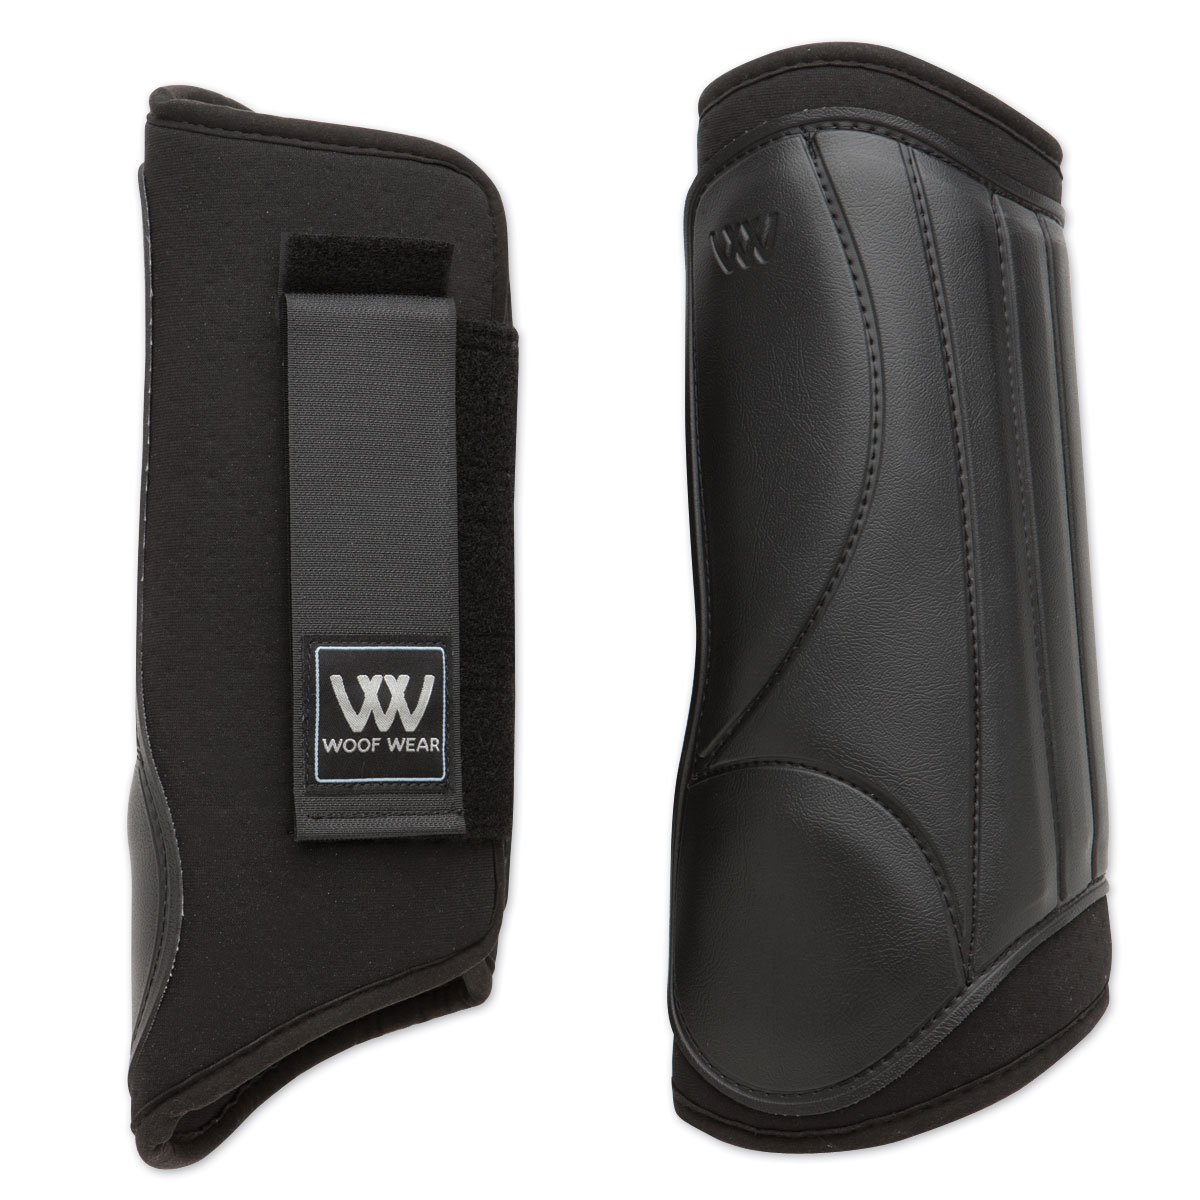 Woof Wear Pro Event Boots -Closeout! - Hind